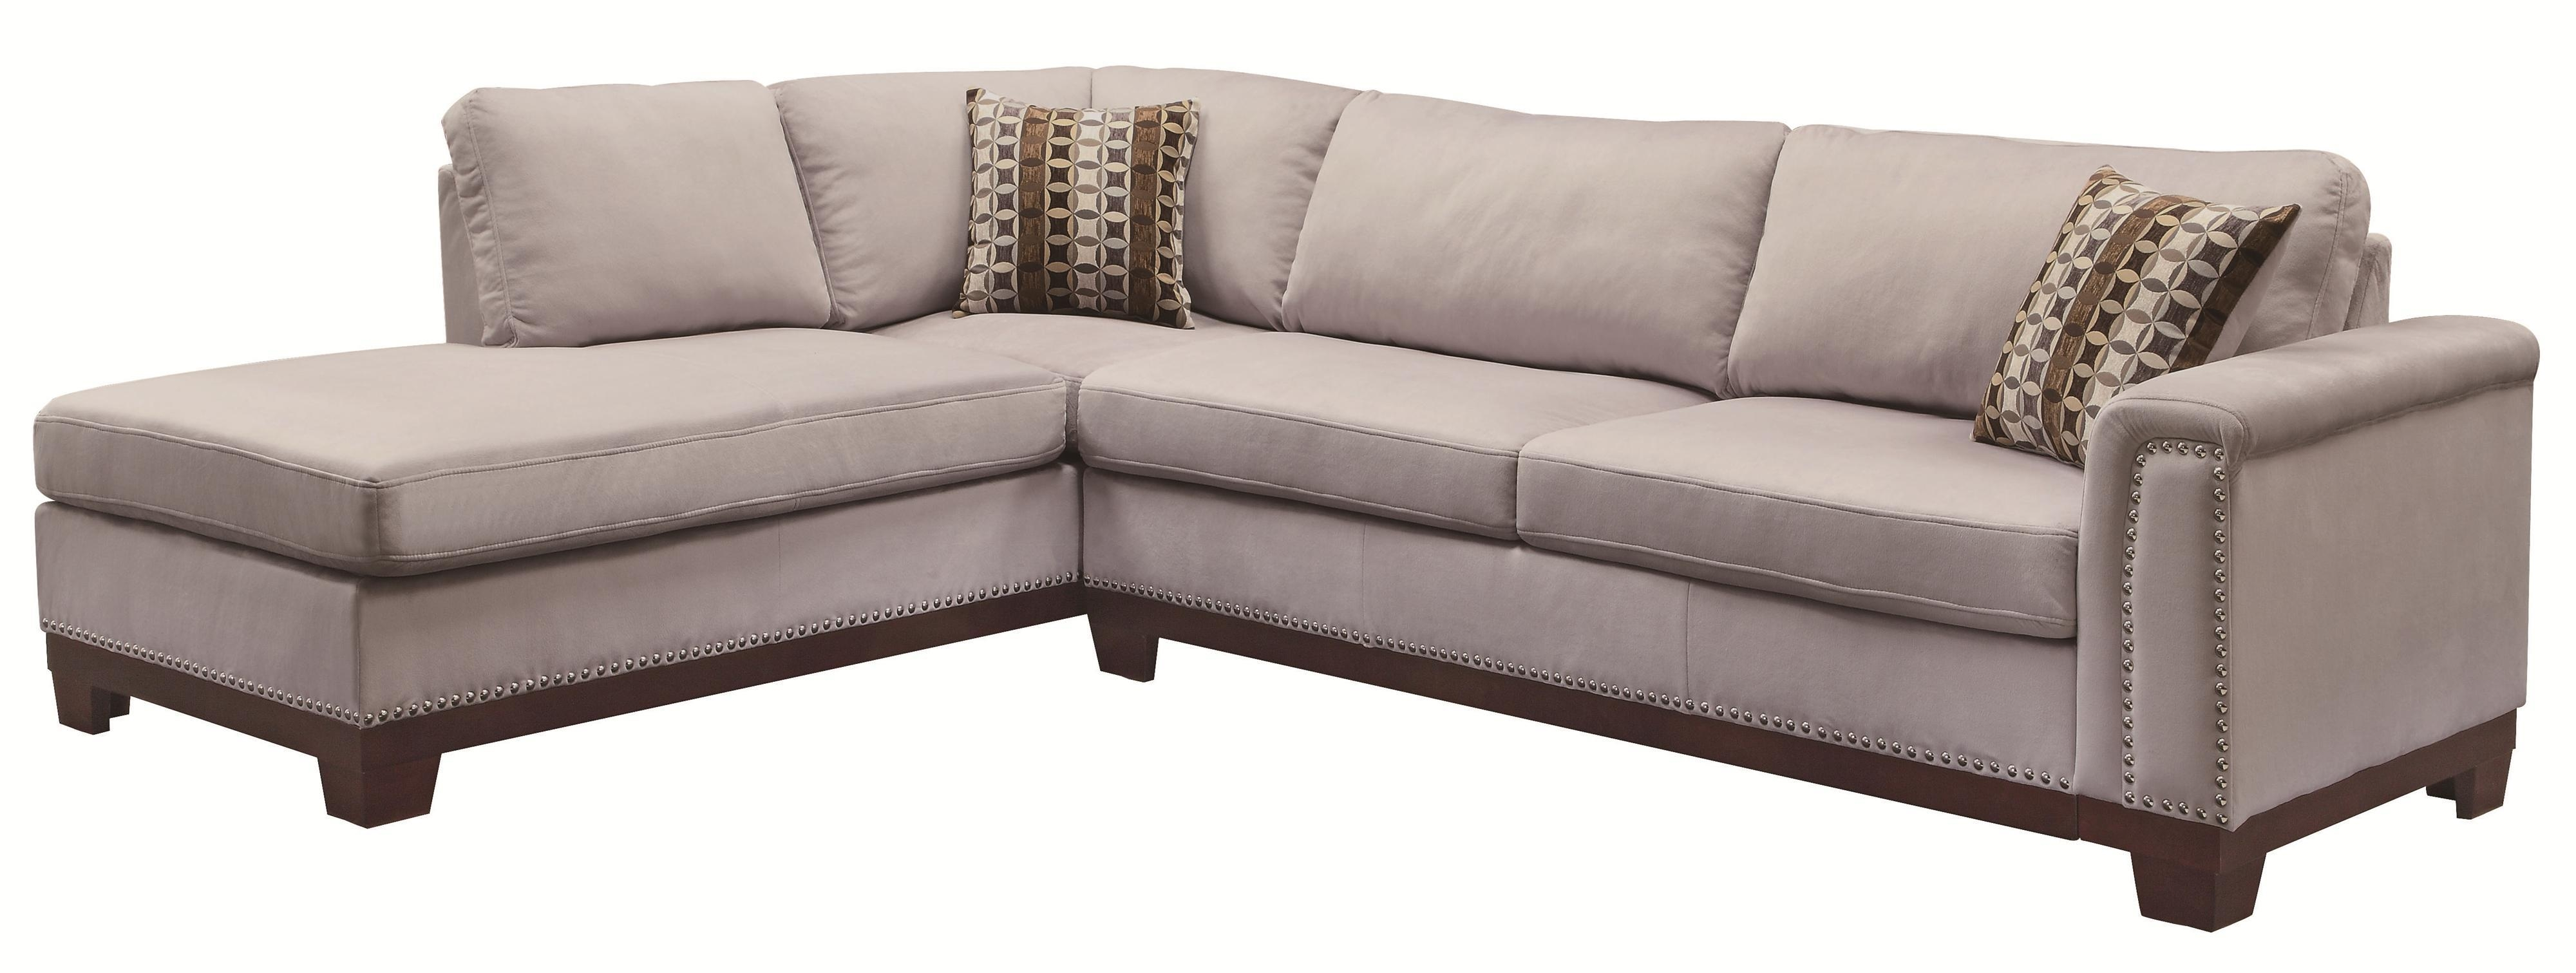 Chaise Lounge Chair Living Room Qvitterus (Image 1 of 20)